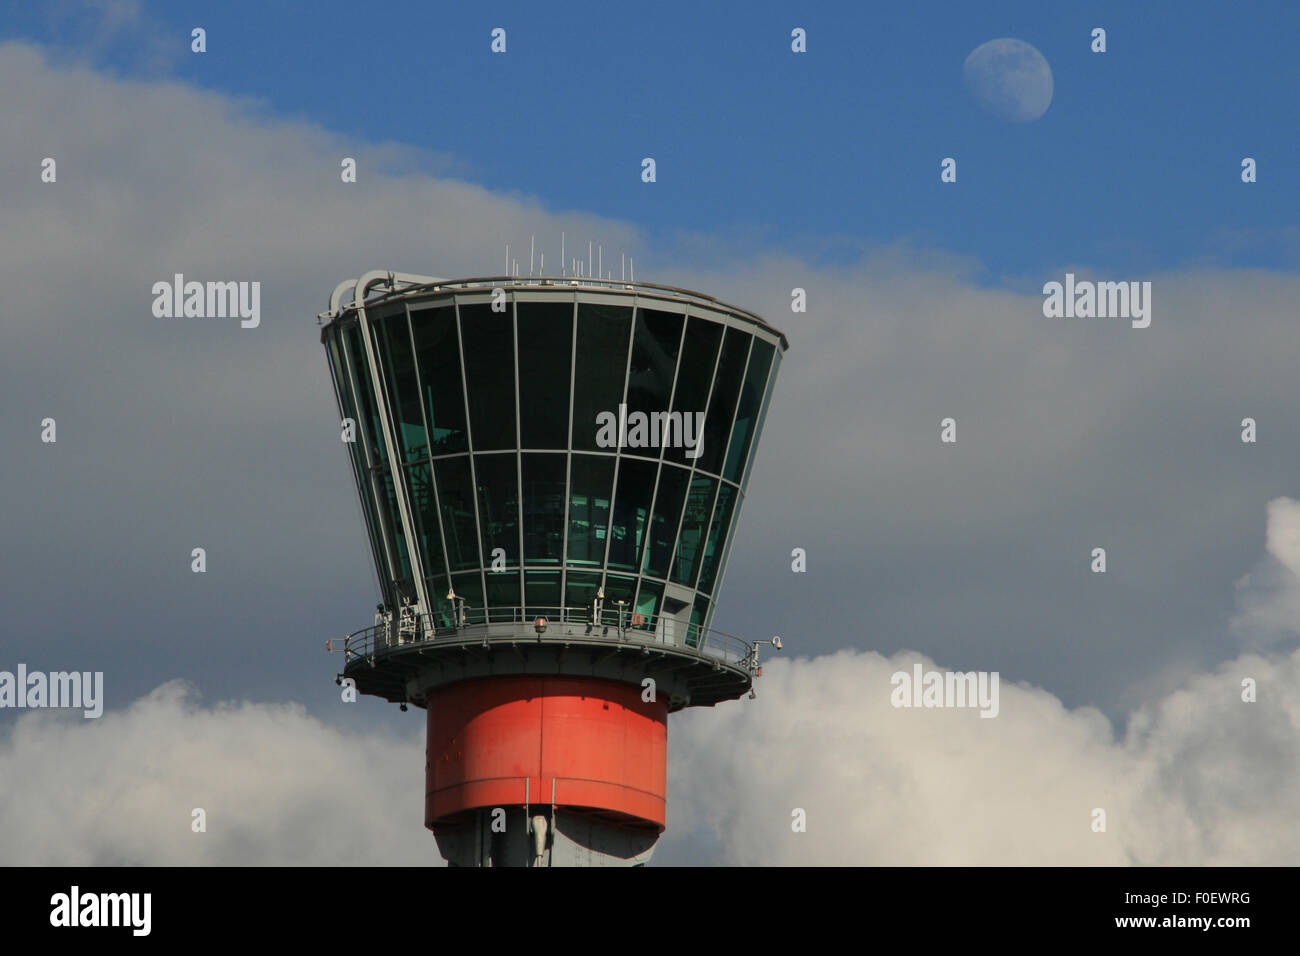 AIR TRAFFIC CONTROL TOWER HEATHROW - Stock Image